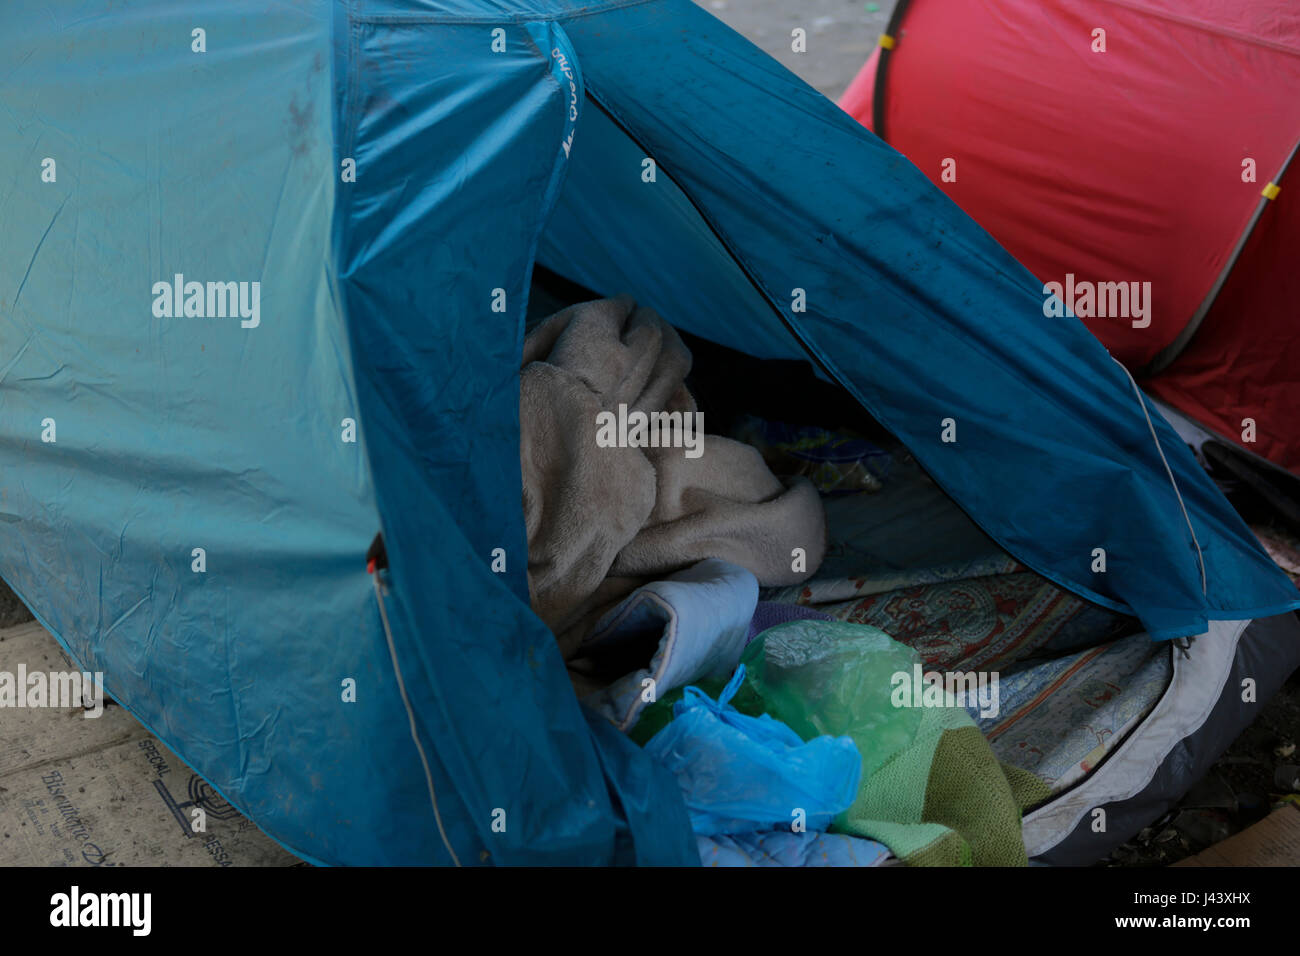 Paris, France. 9th May 2017. The refugees had to leave their tent s they were when they got evicted. City officials - Stock Image